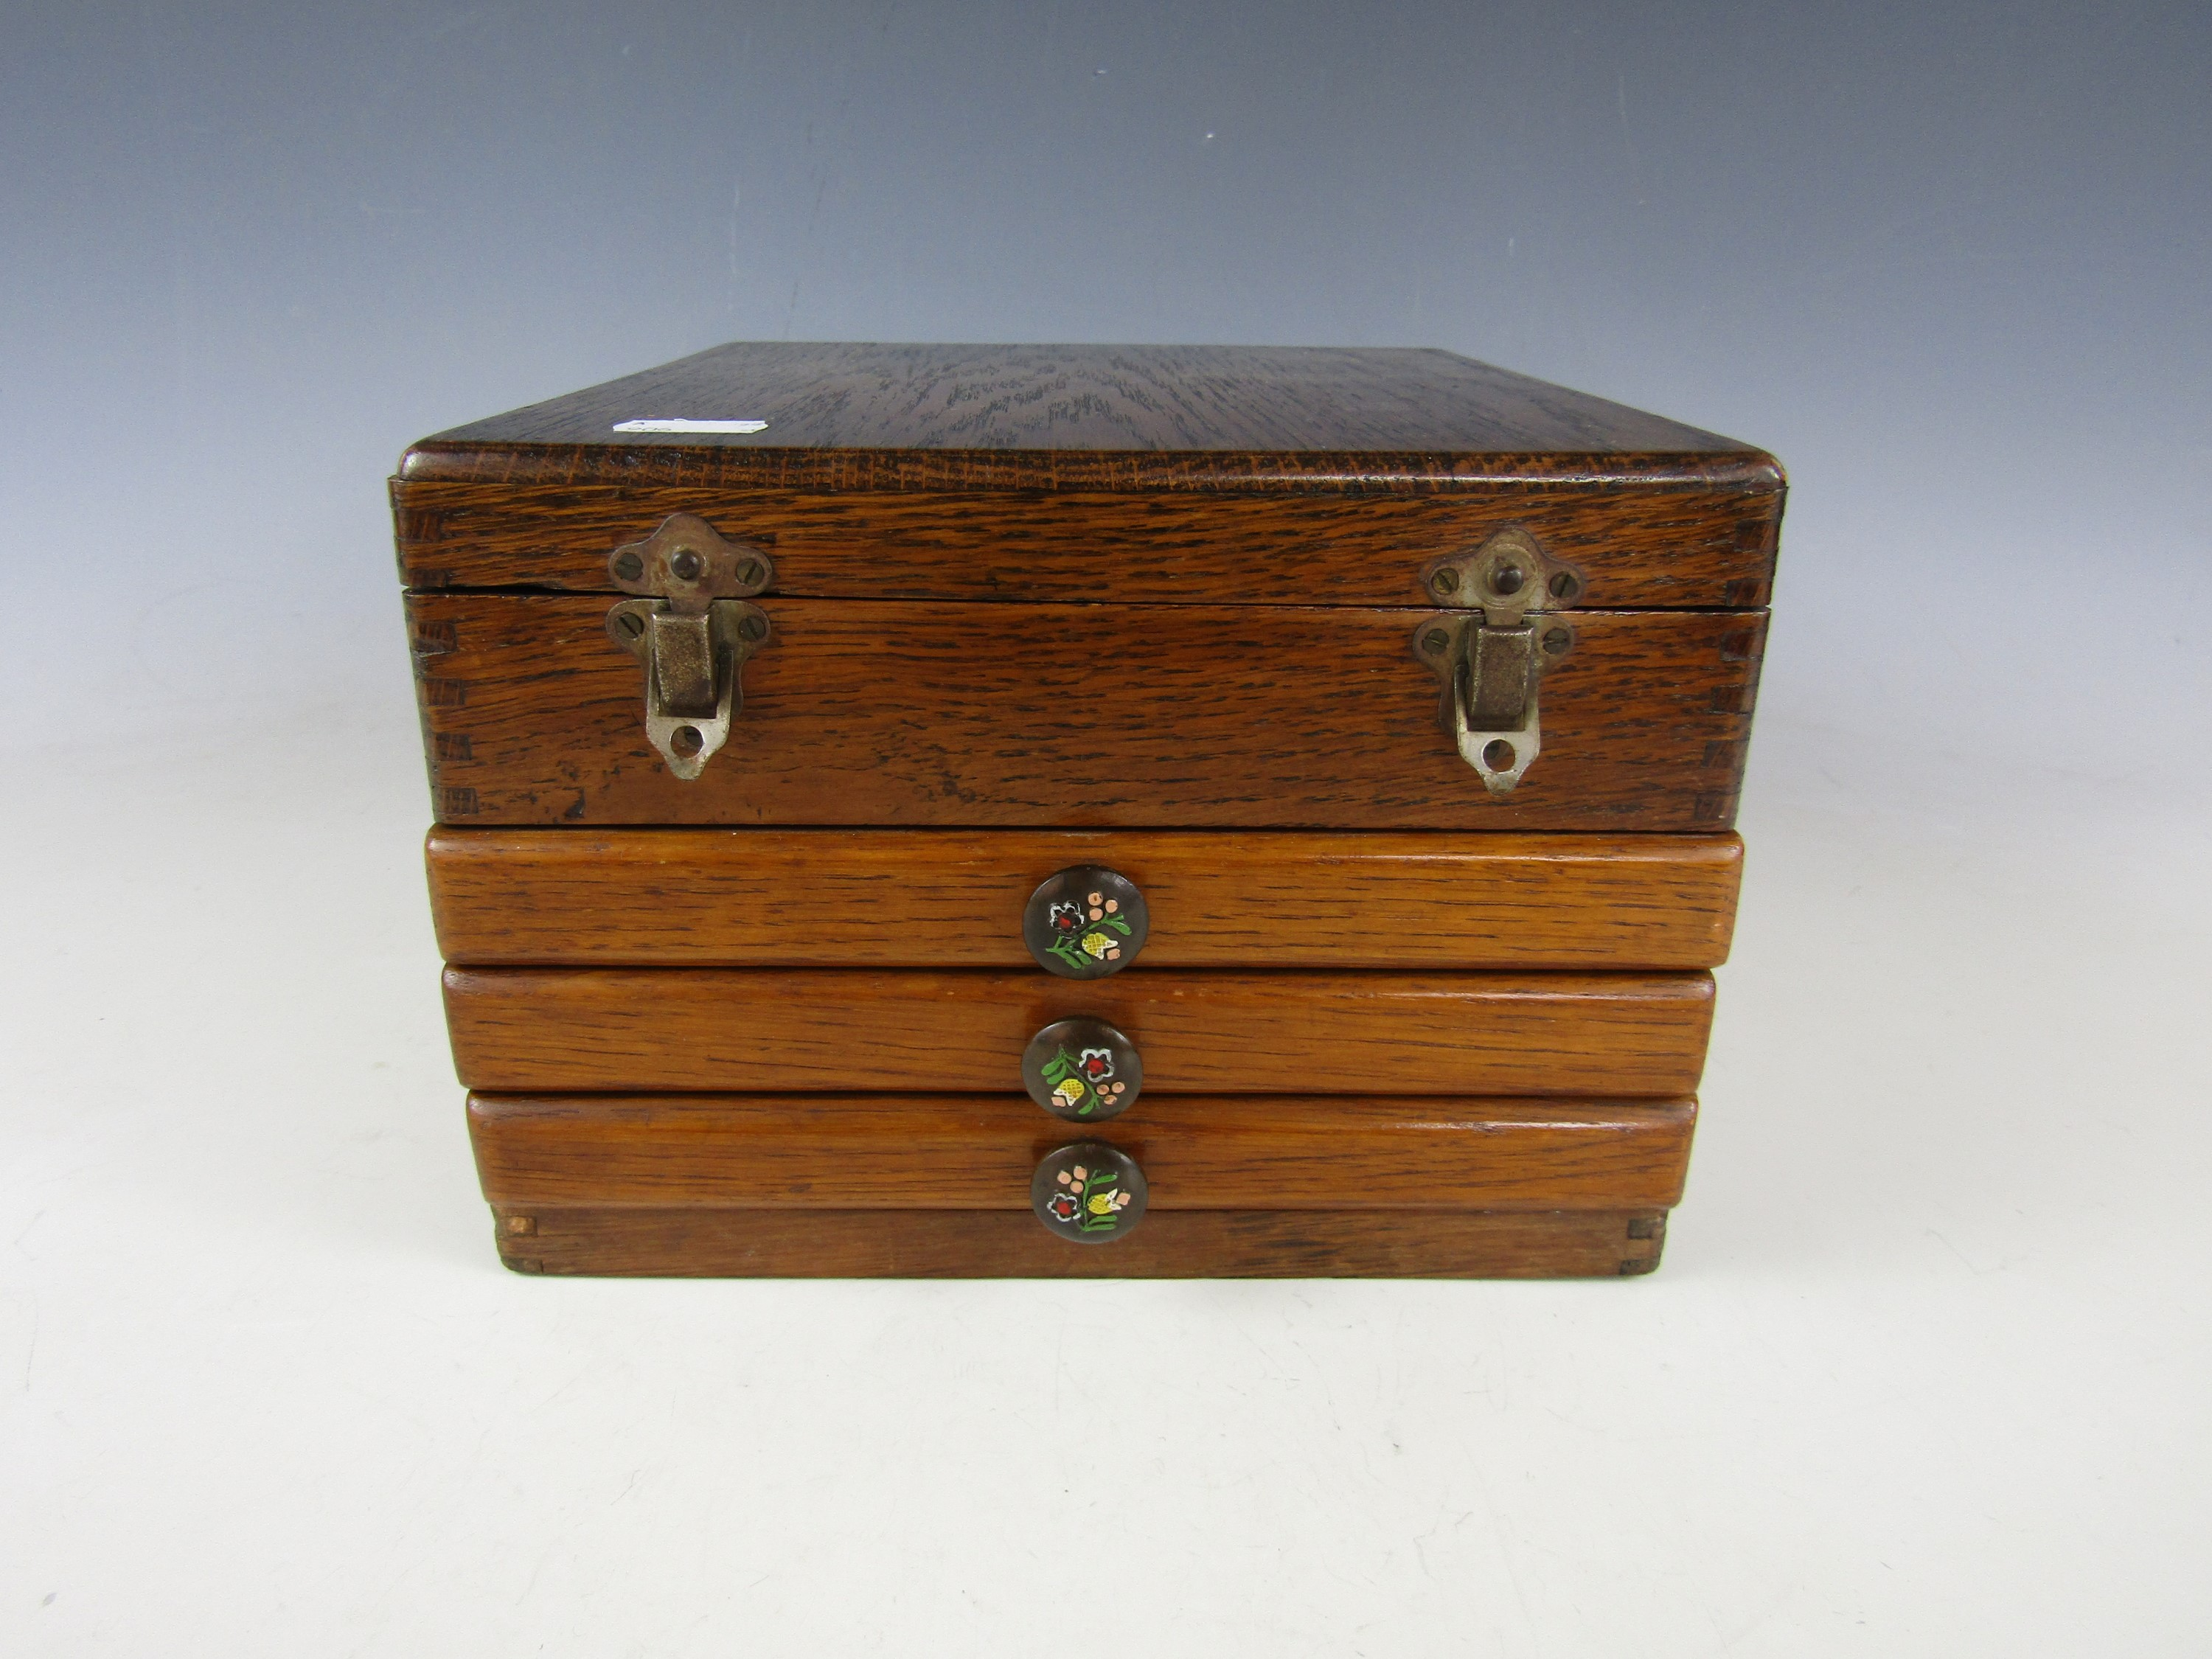 Lot 8 - A 1930s oak cased Mah-jong set, with composition tiles, bone markers and dice, 22 x 25 x 15 cm high